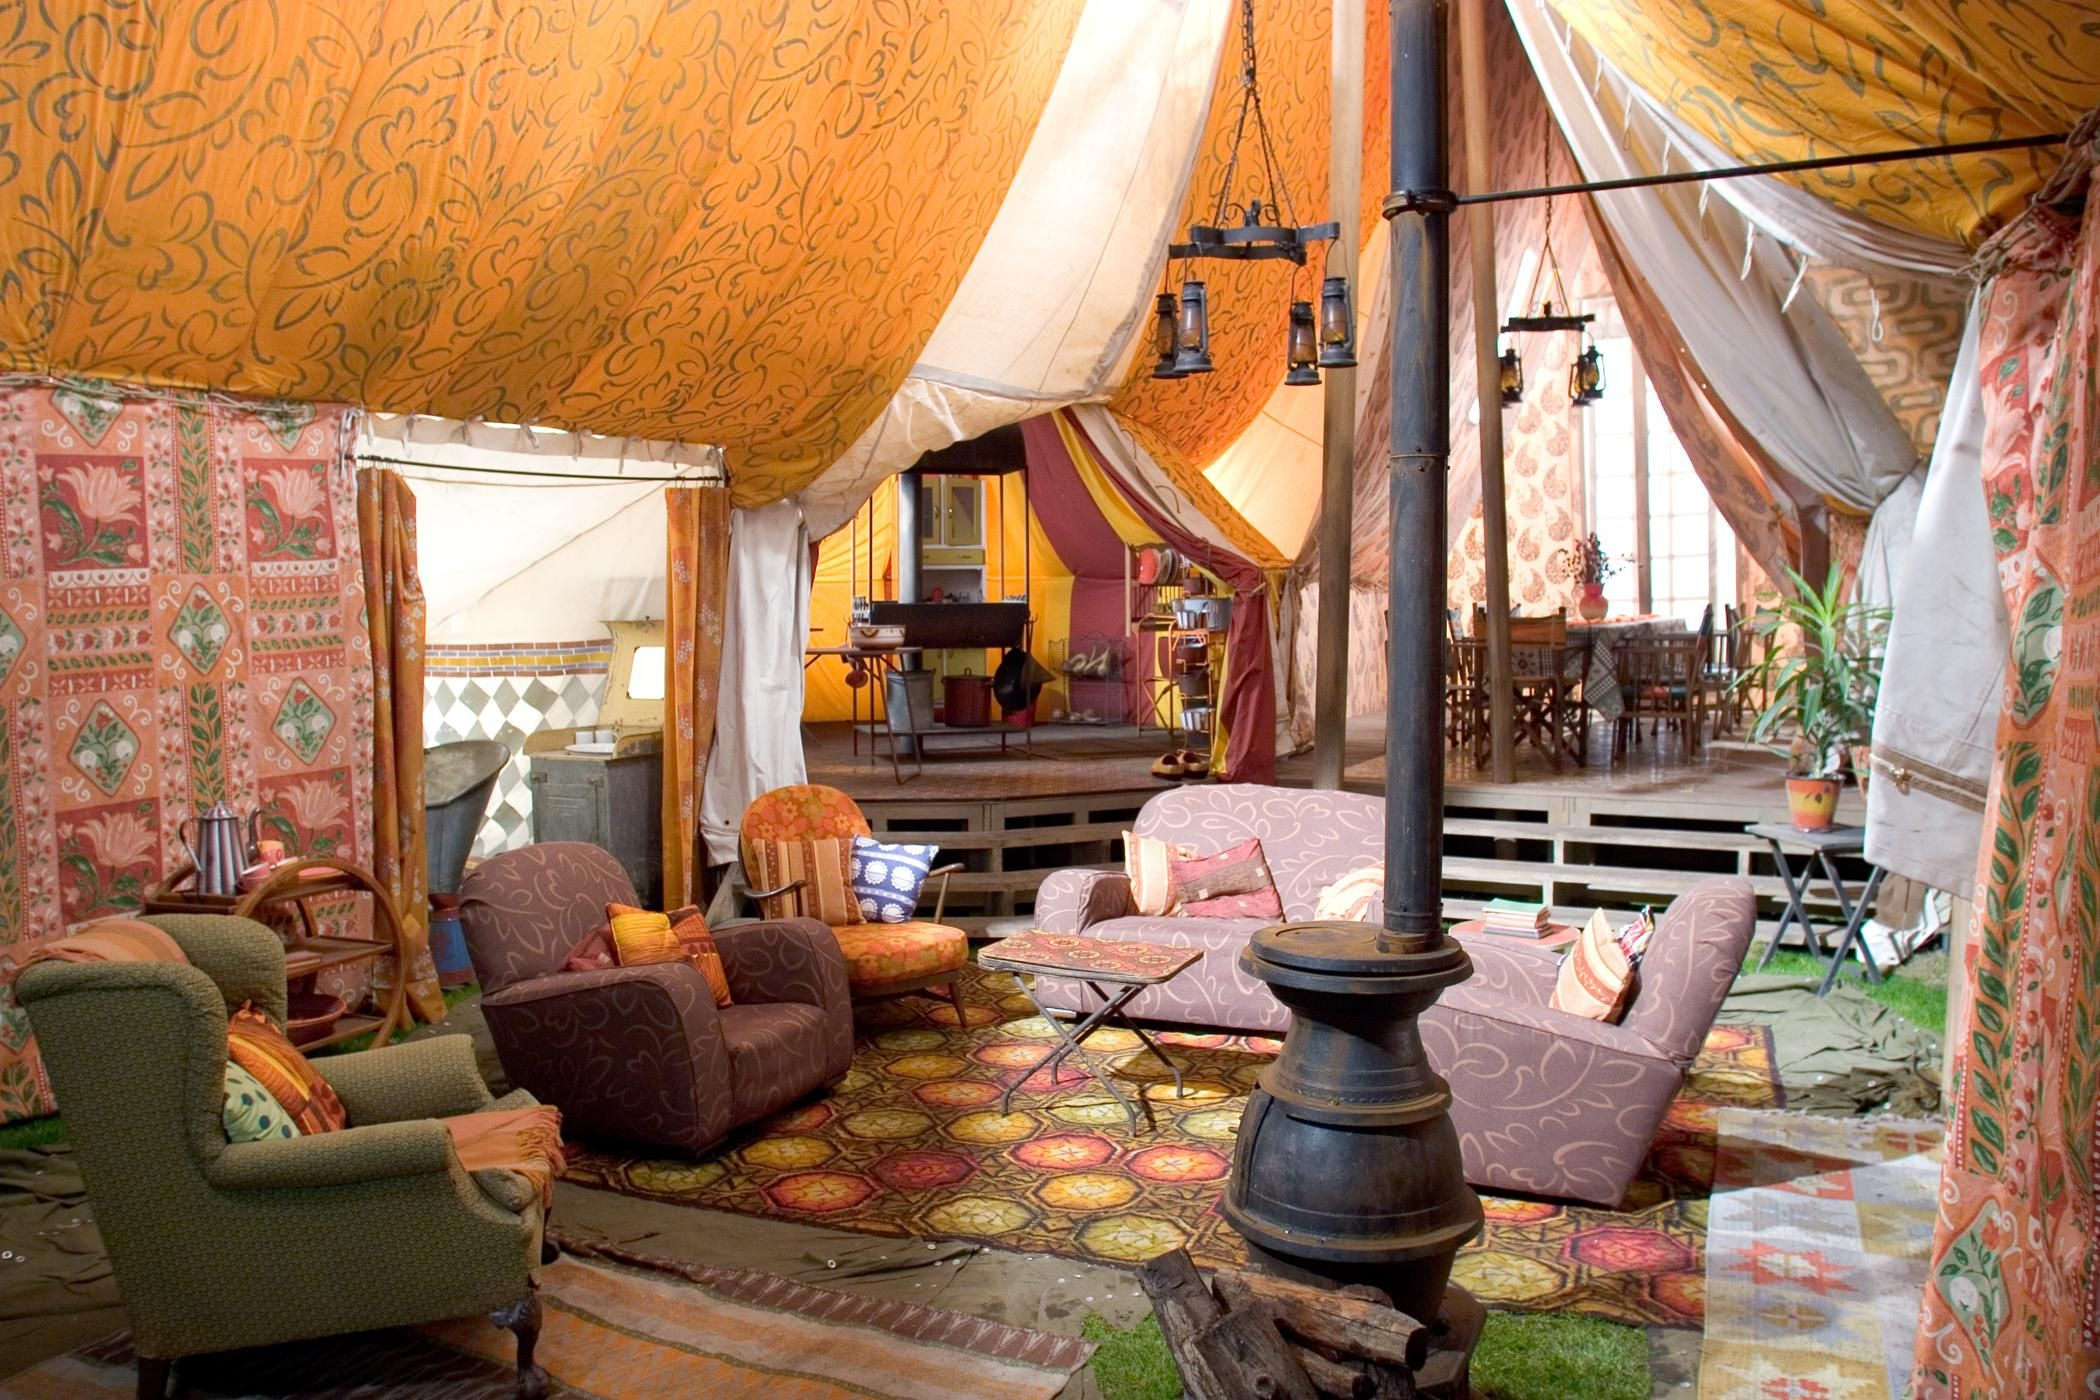 How to achieve a bohemian style for your home | Tents, Harry ...